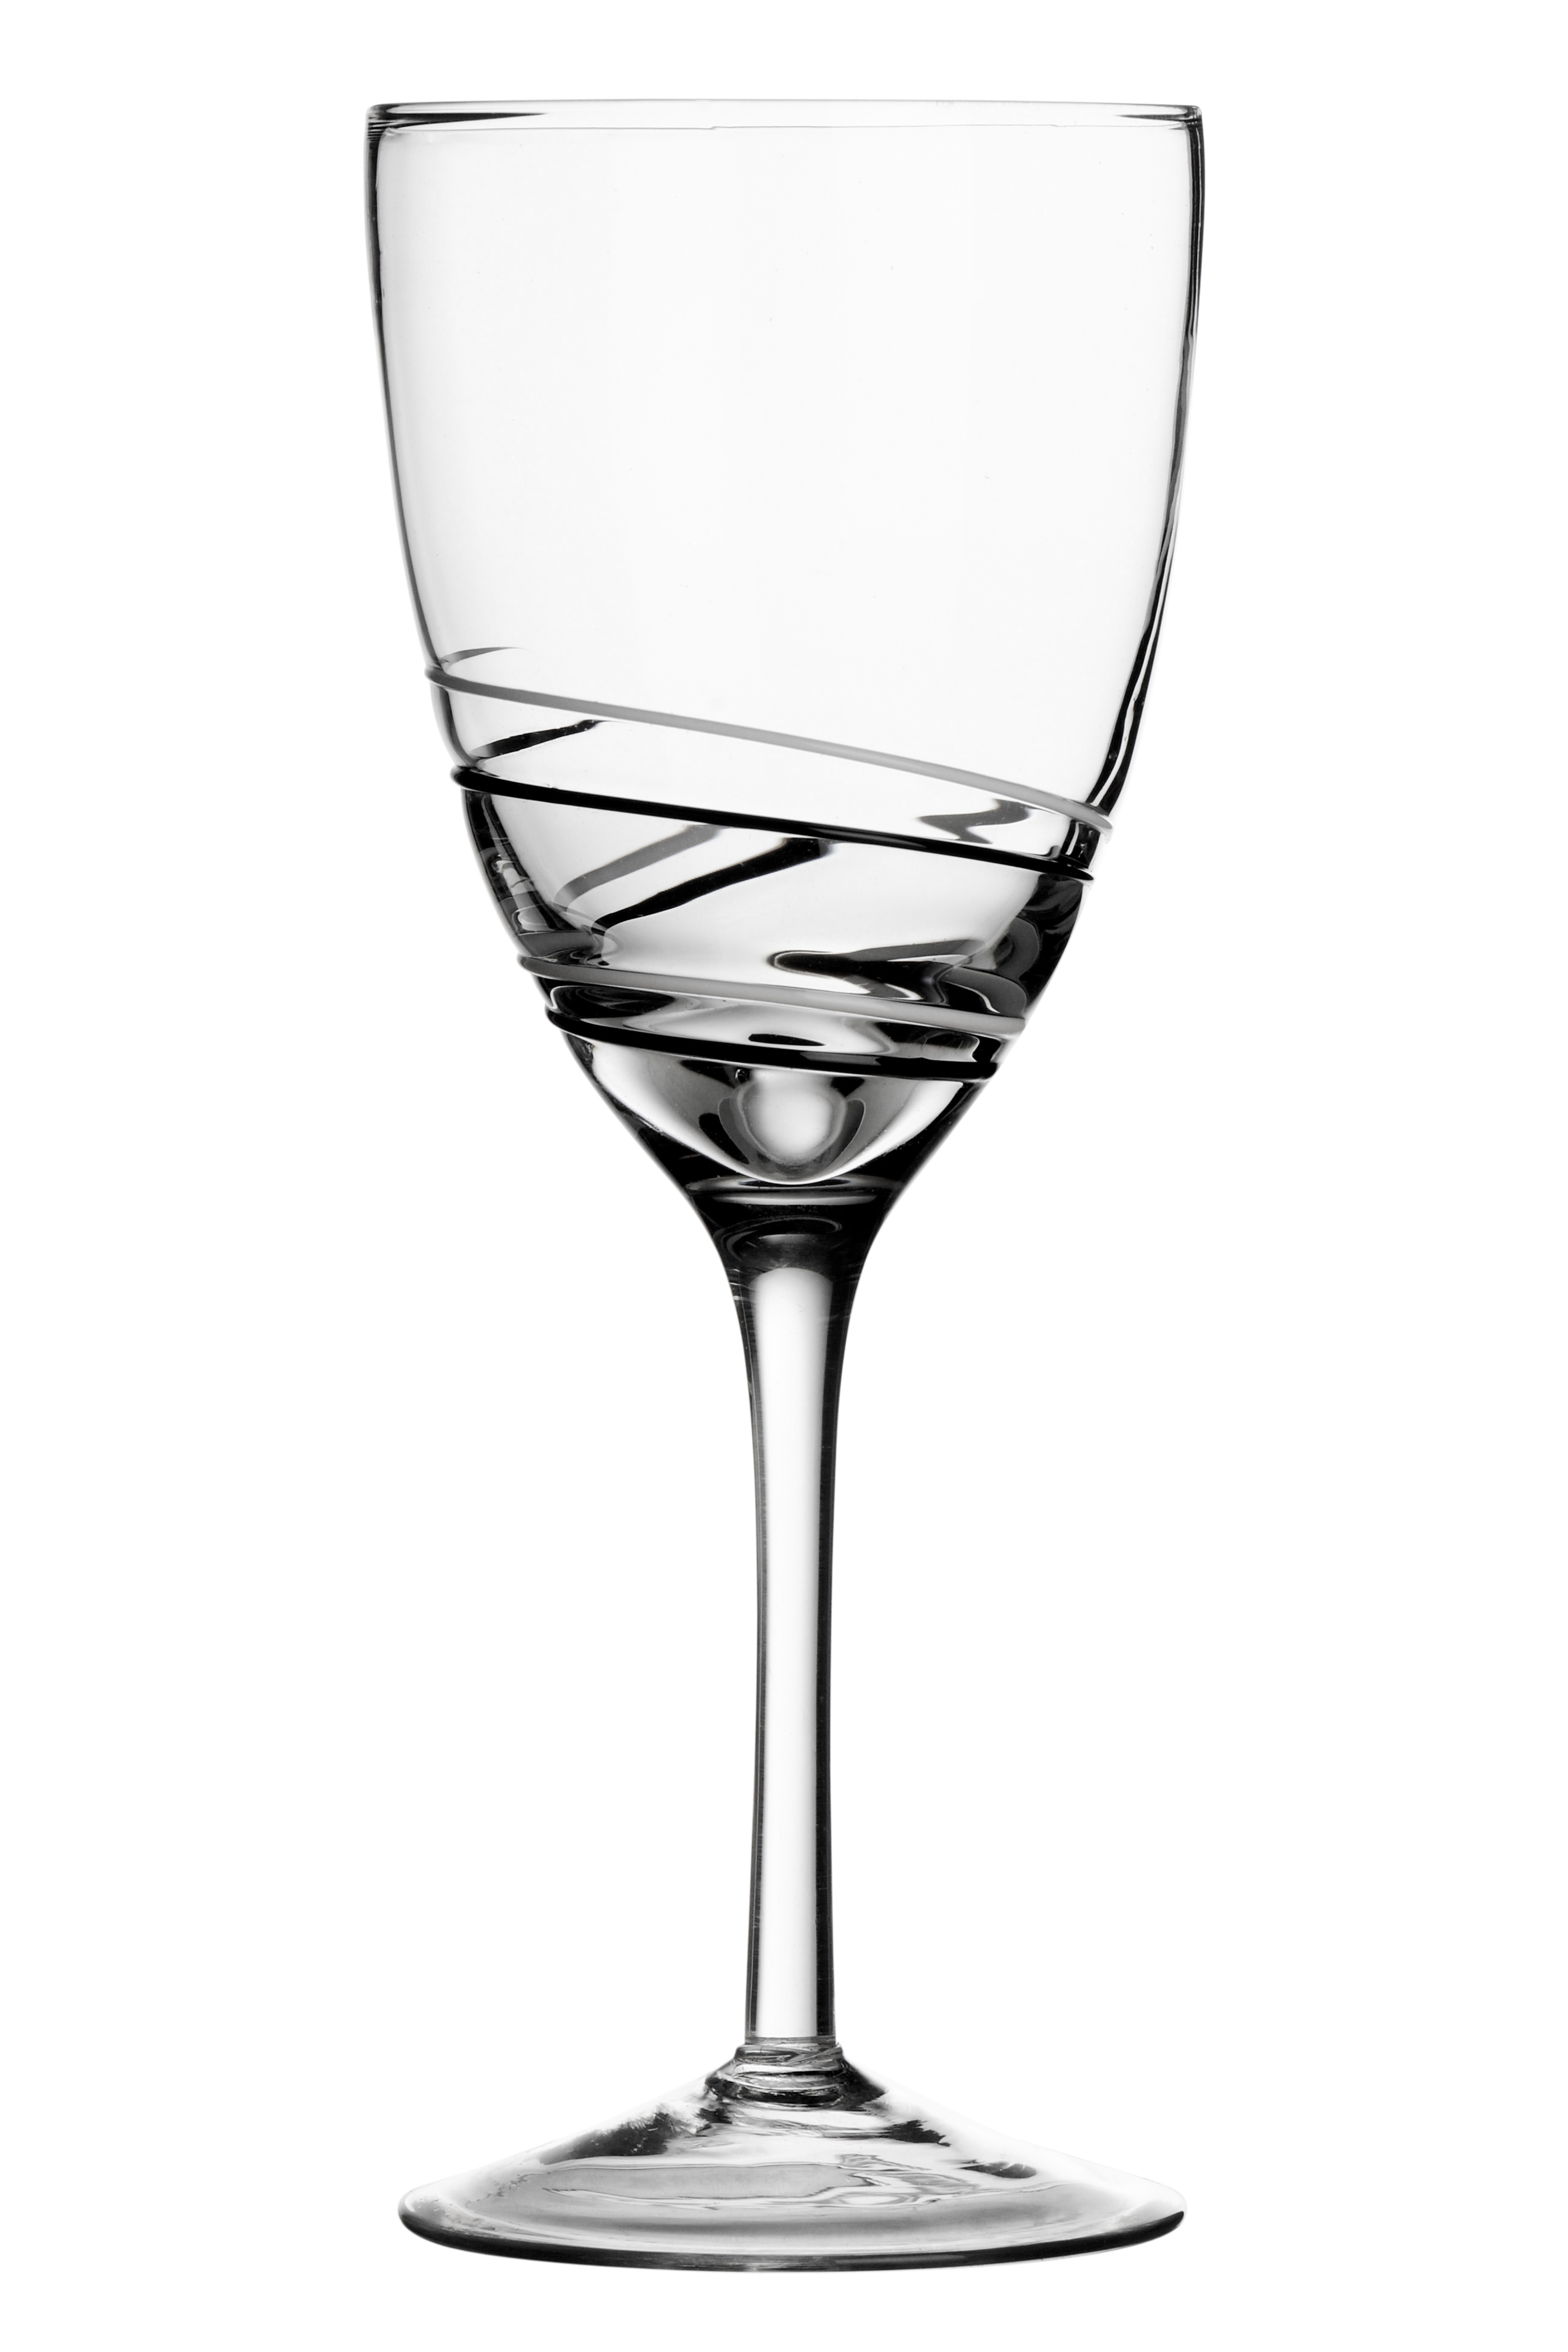 Viva White Wine Glasses, Set of 2, Black/White Swirl